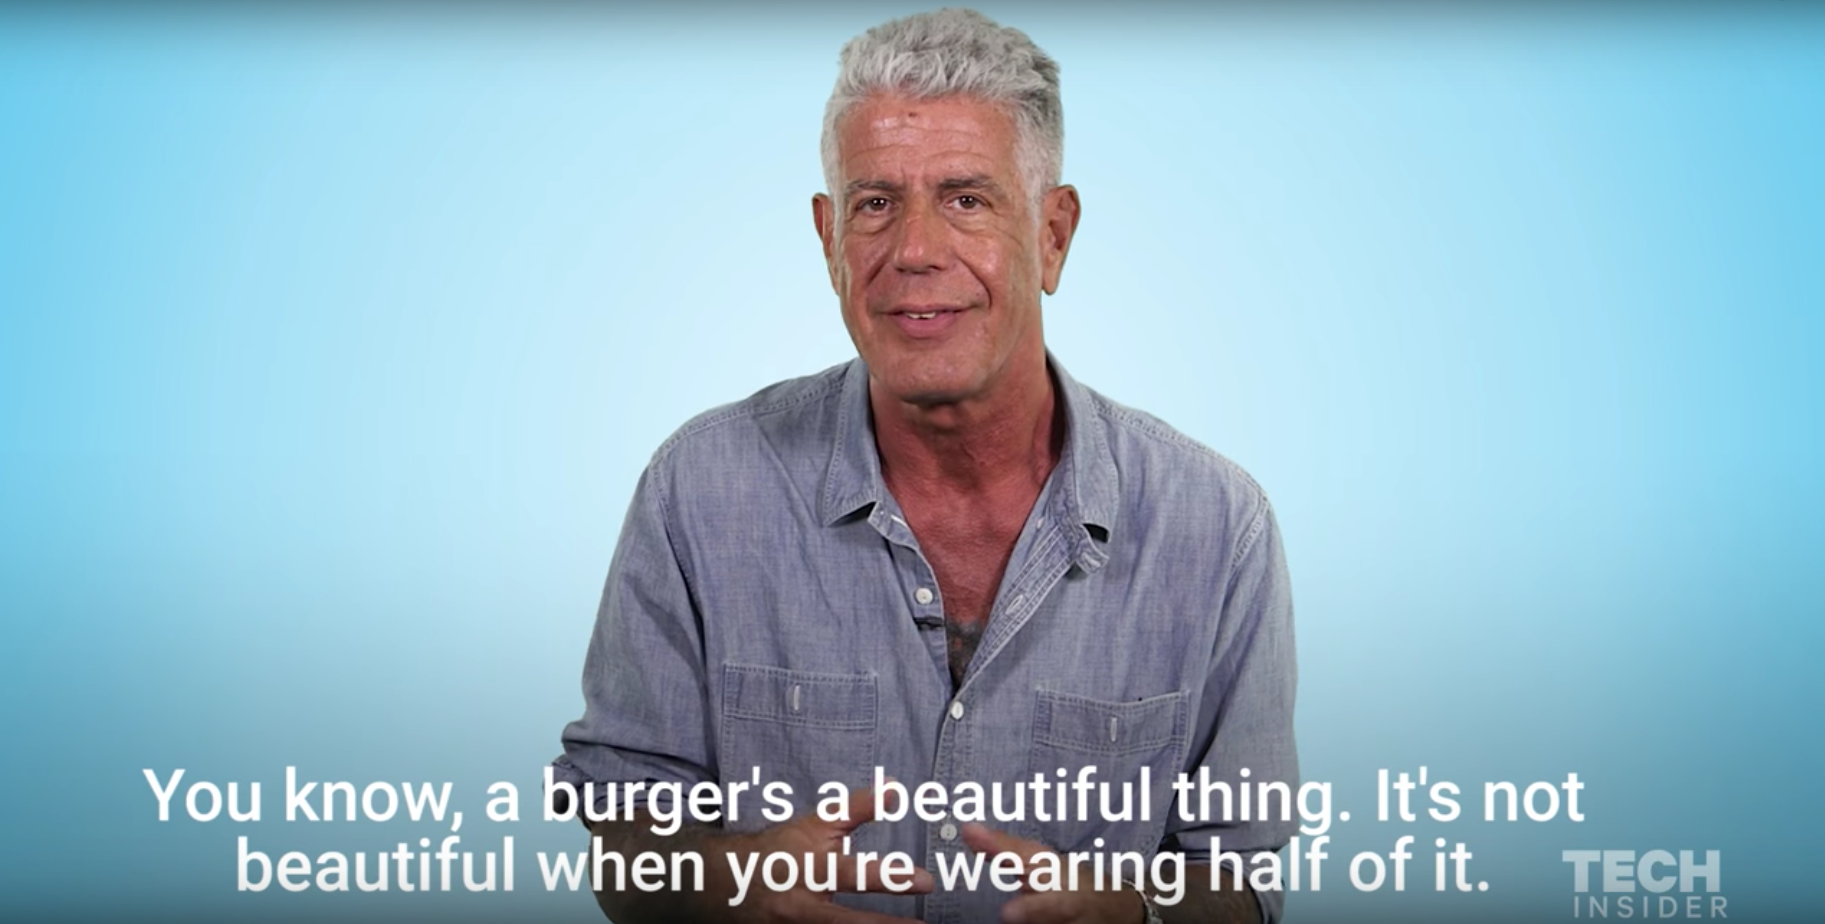 e164e8ee6f Watch Anthony Bourdain Lay Out His 3 Rules For The Perfect Burger